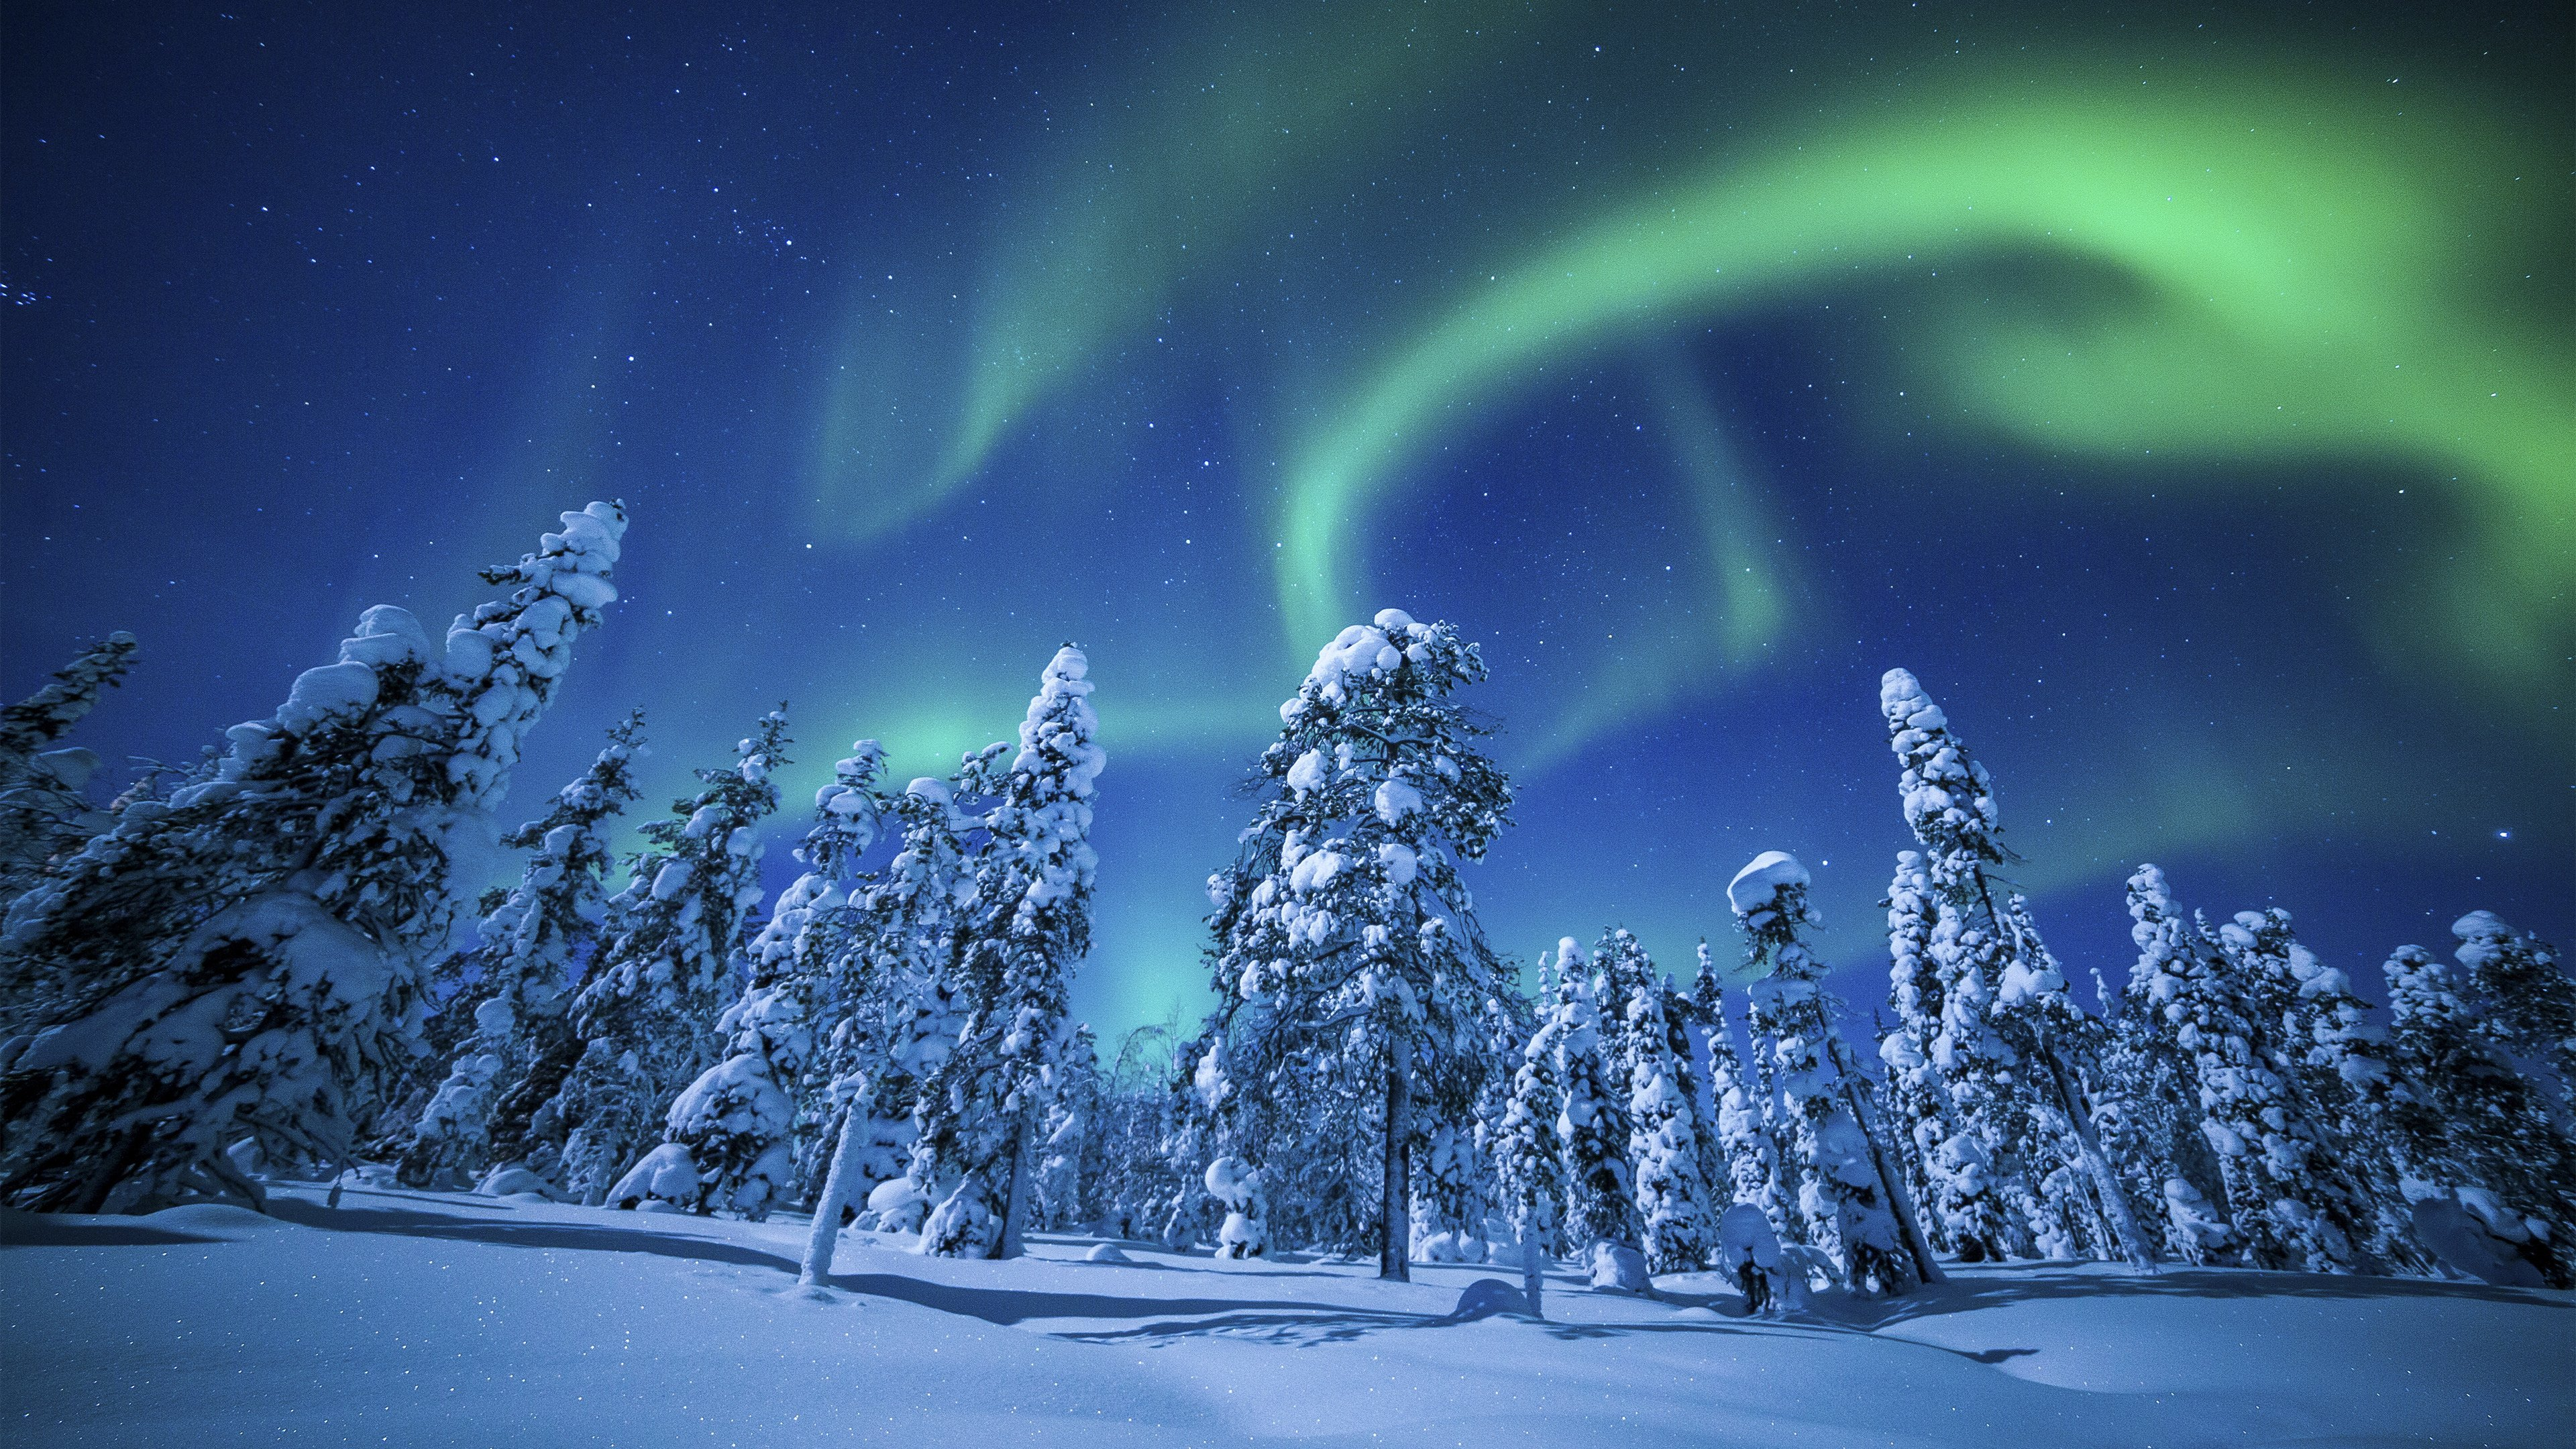 Winter forest sky nature beautiful northern lights